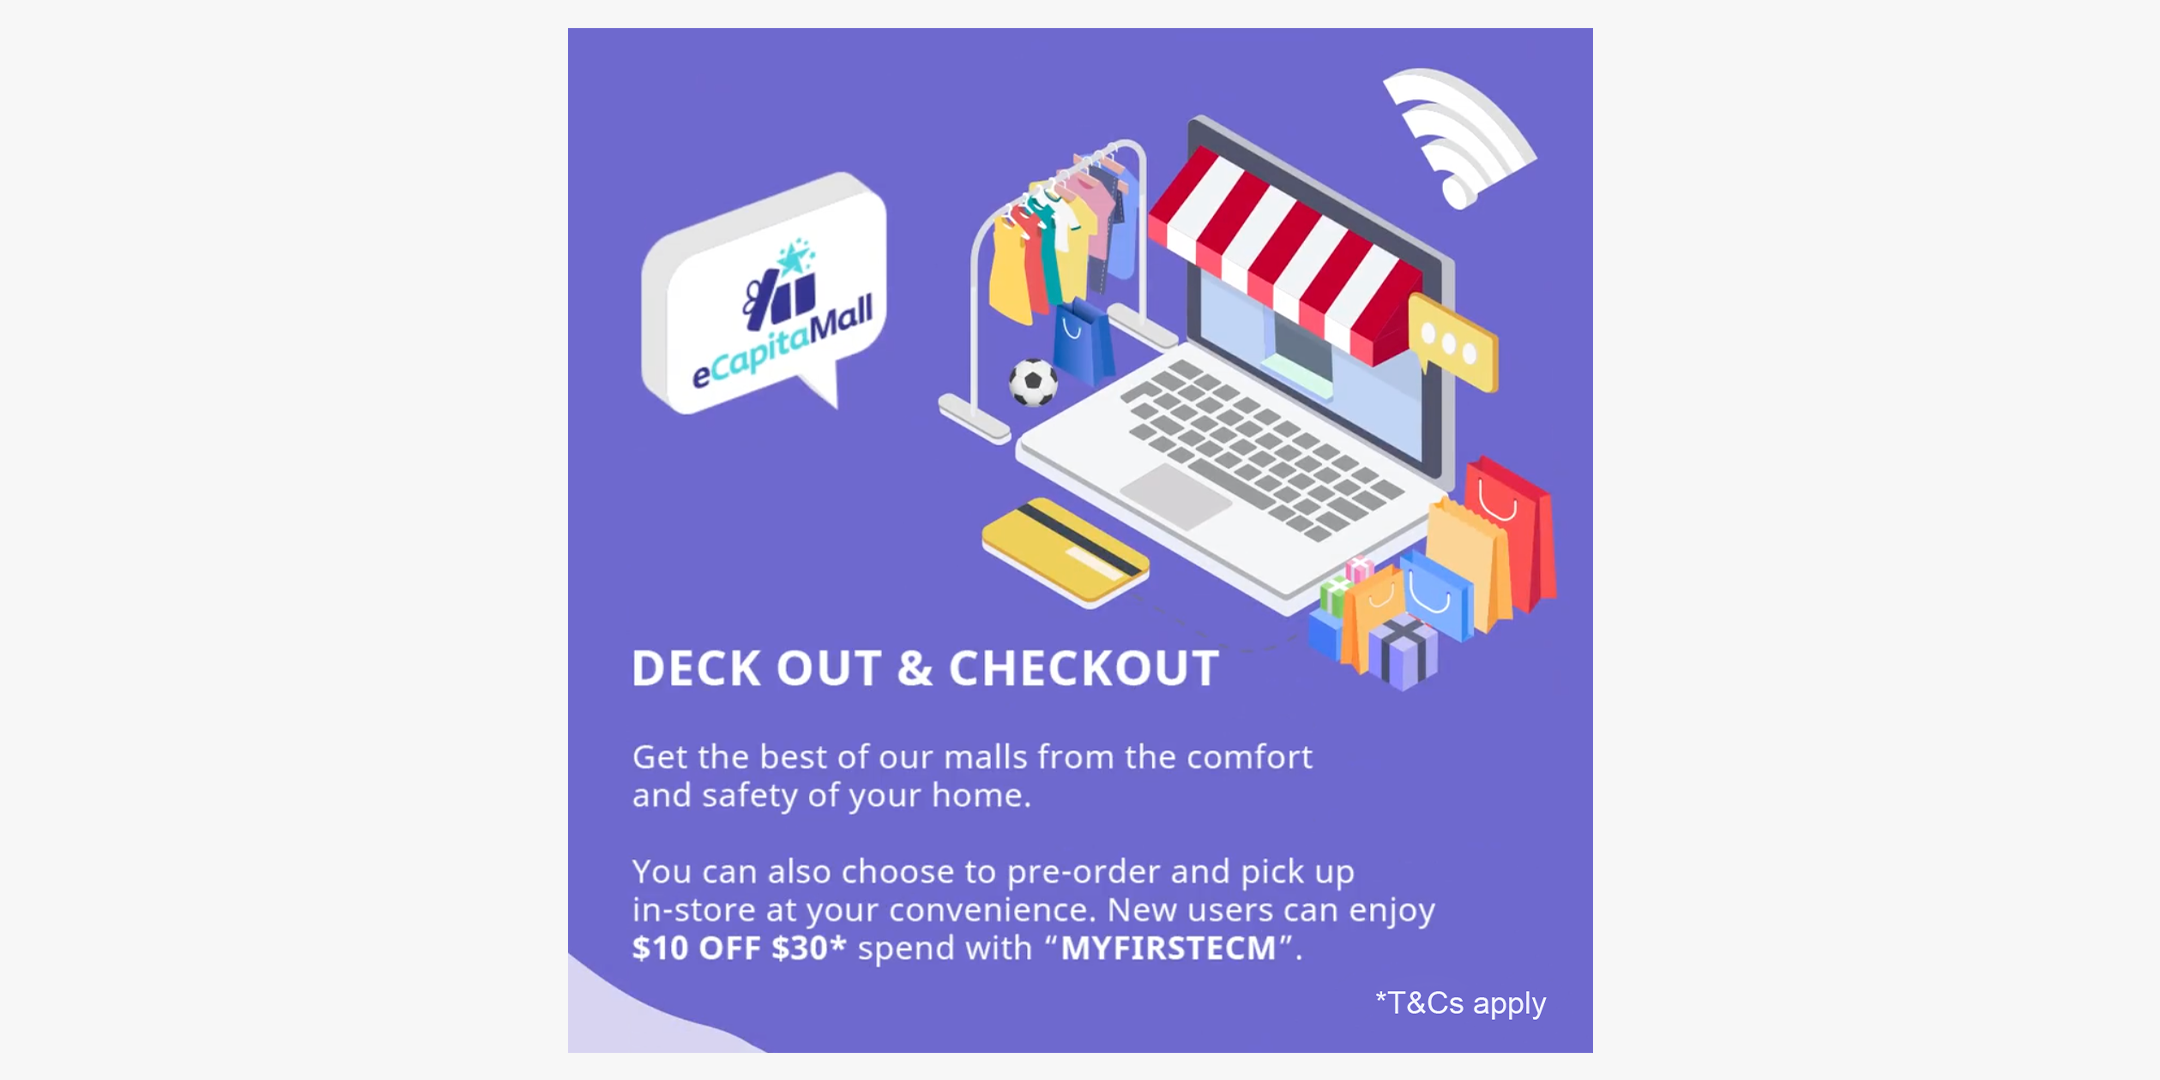 eCapitaMall: Deck out & Checkout